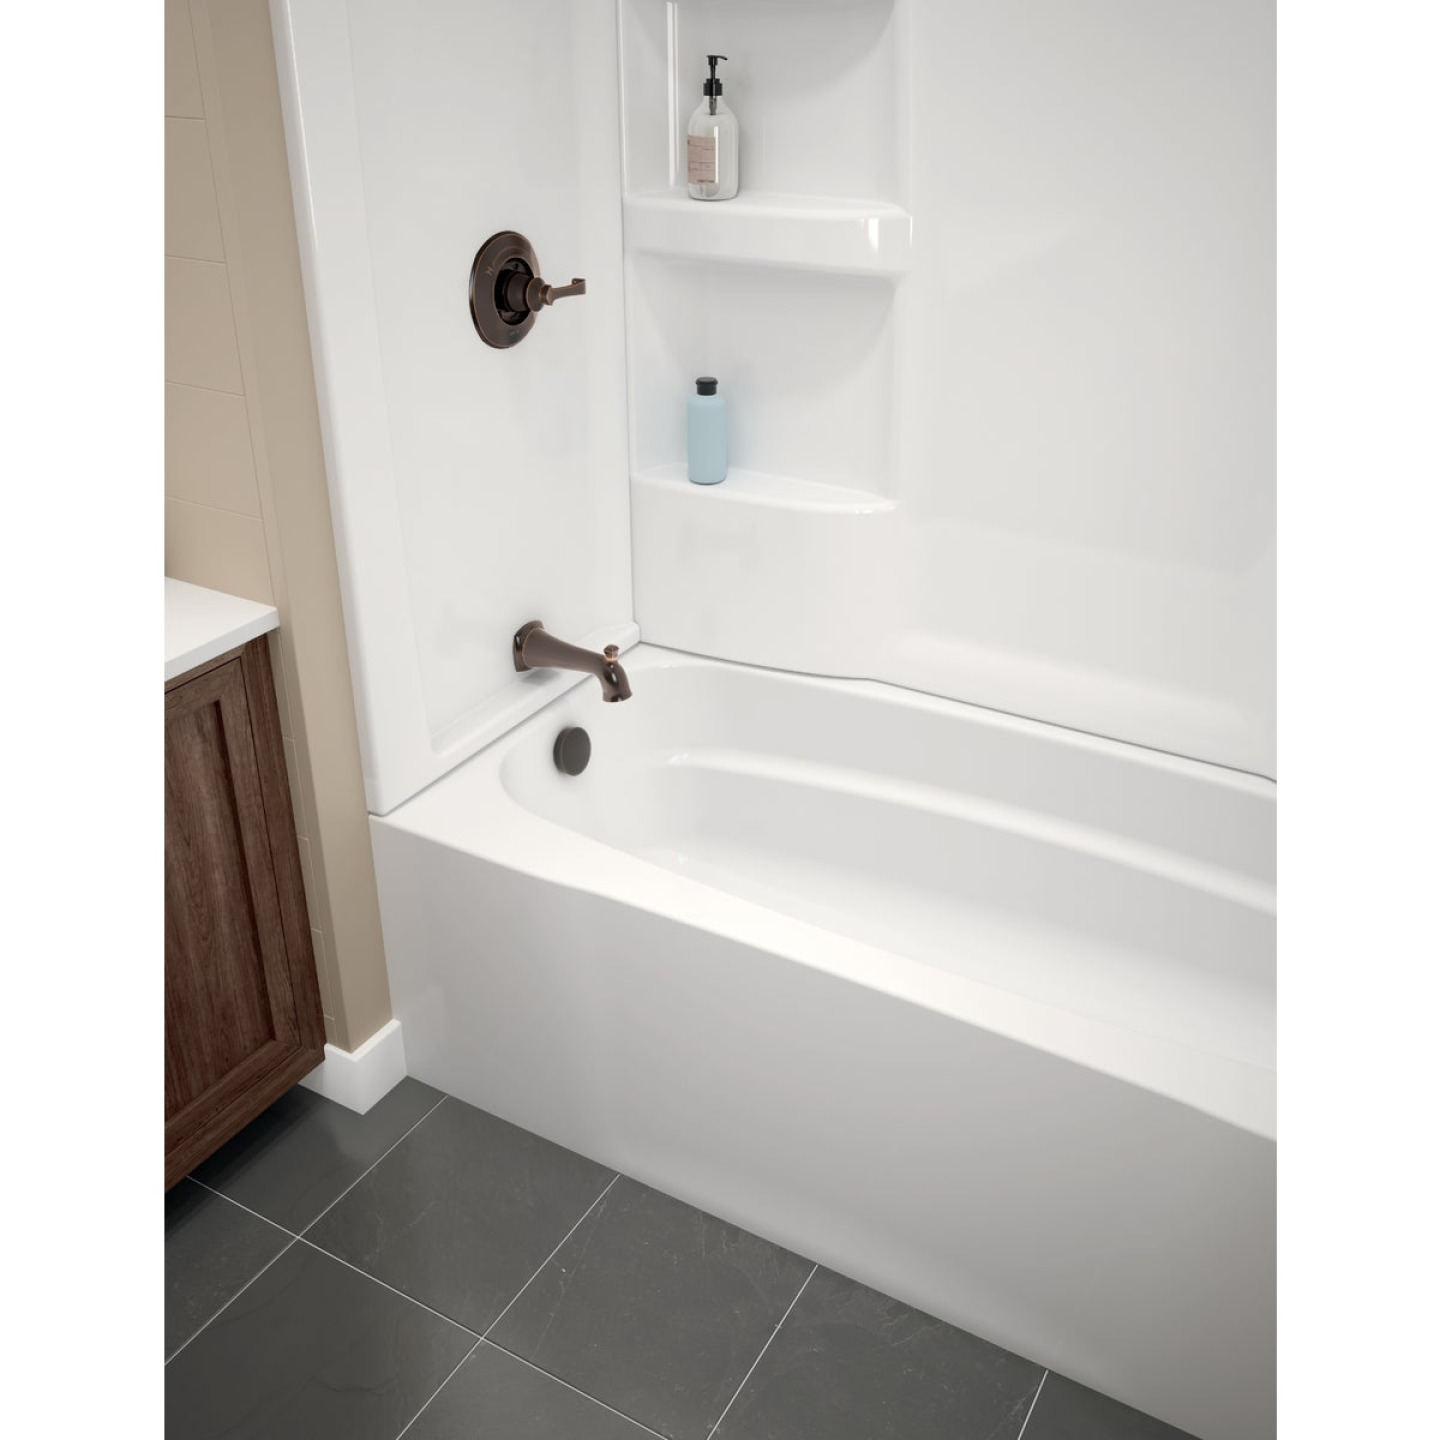 Delta Hycroft 60 In. L x 30 In. W Left Drain Bathtub in White Image 1